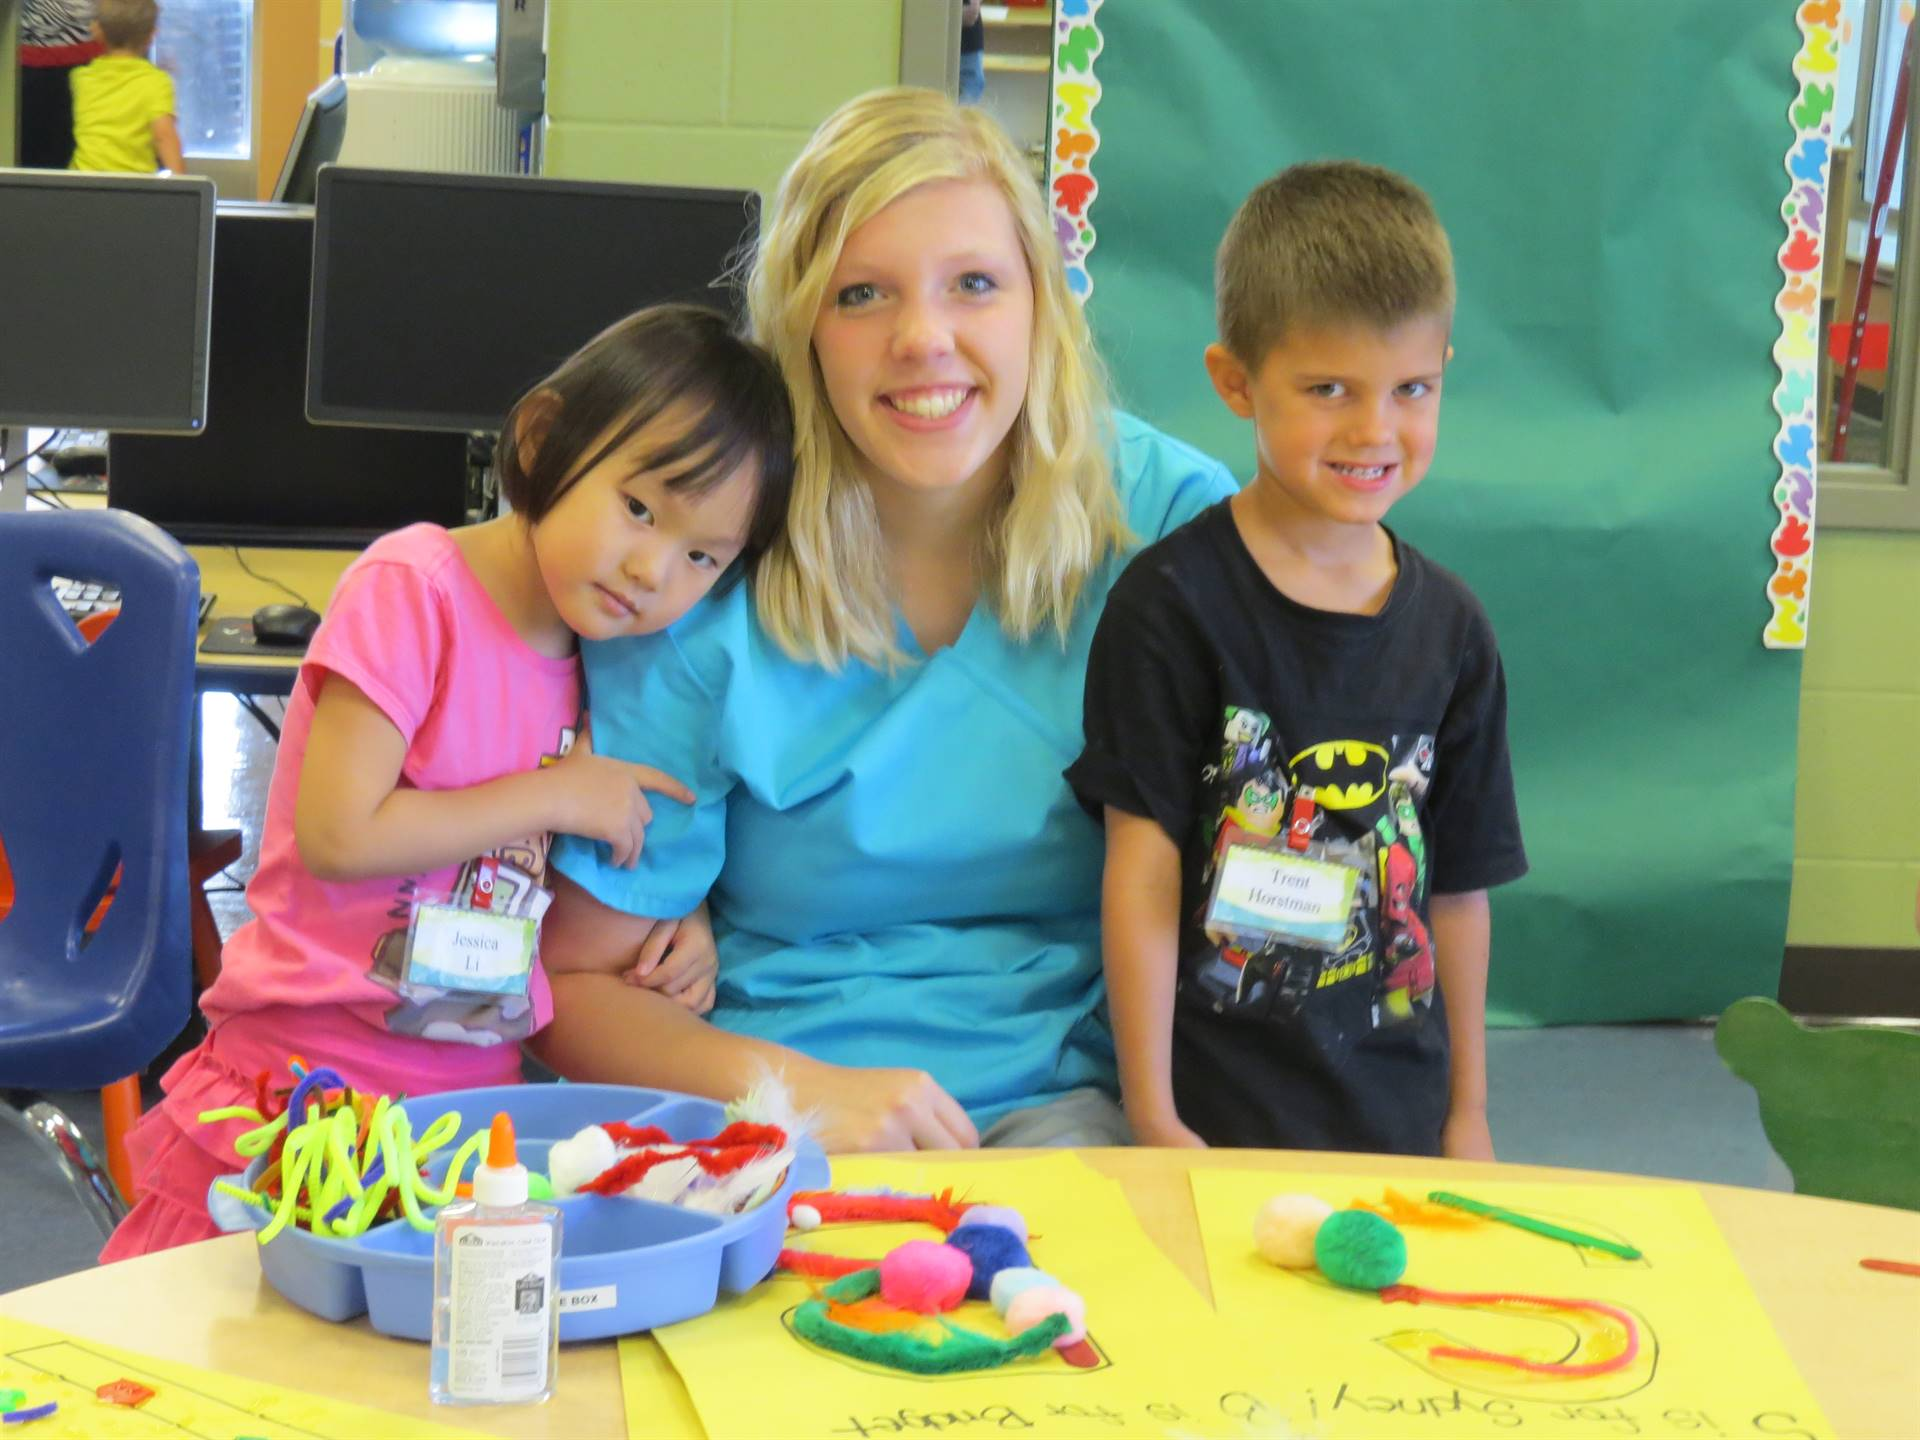 A smiling female Early Childhood Education student with a preschooler on each side of her